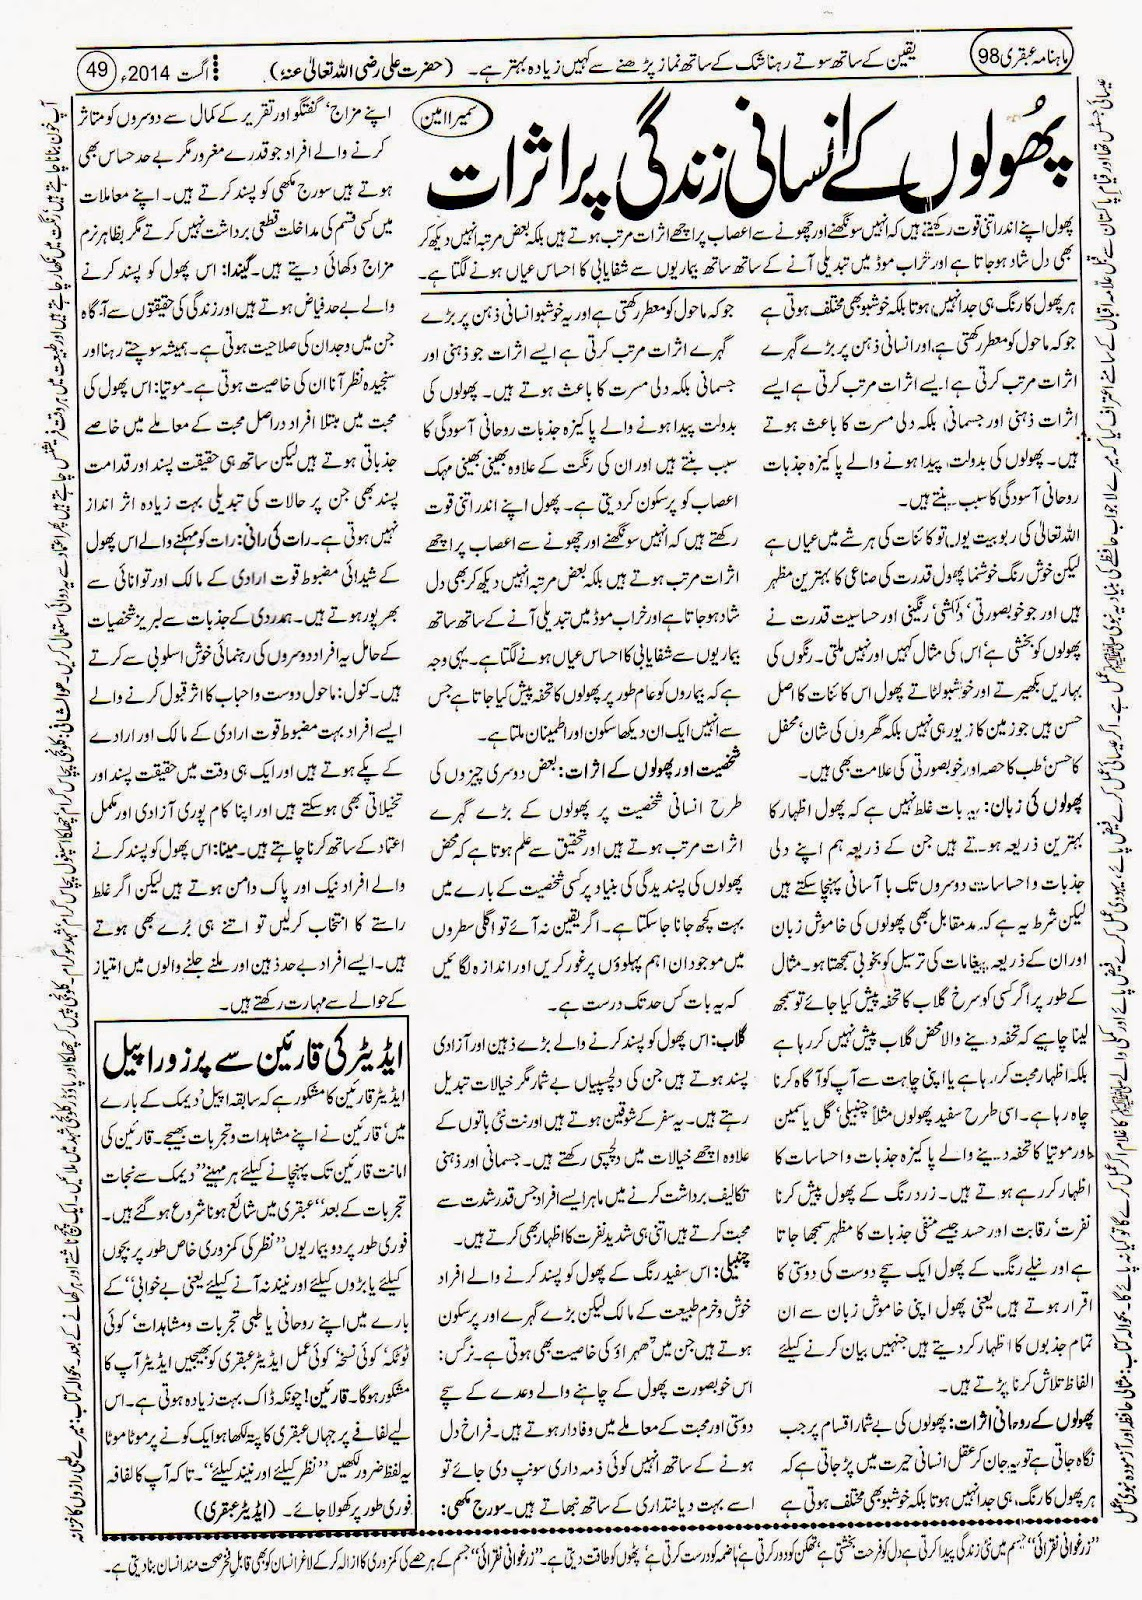 Ubqari August 2014 Page 49